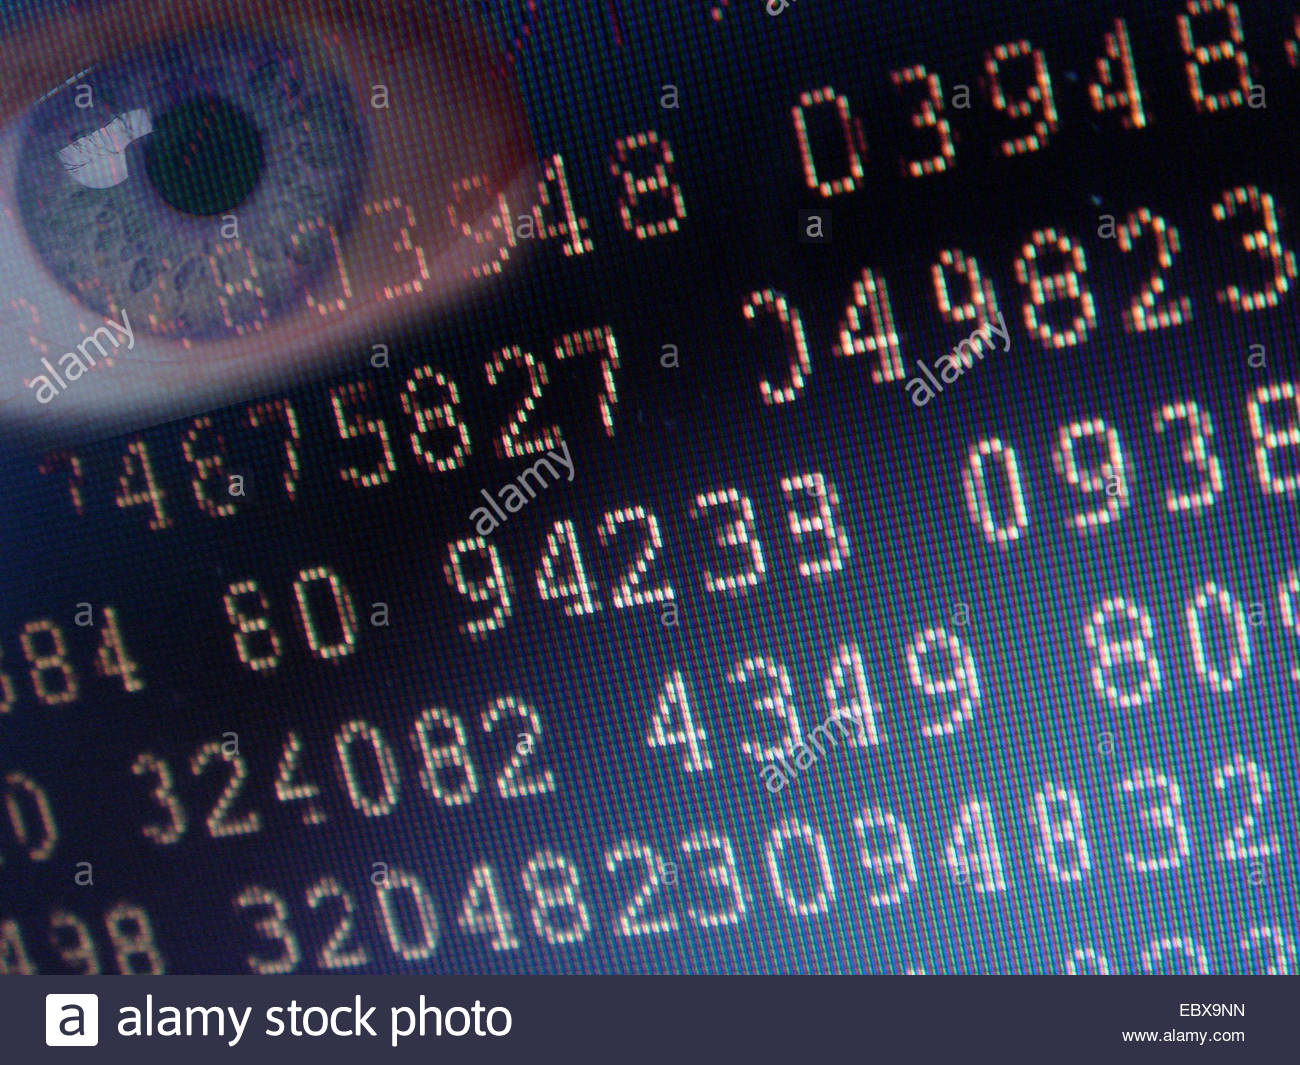 stored data - Stock Image